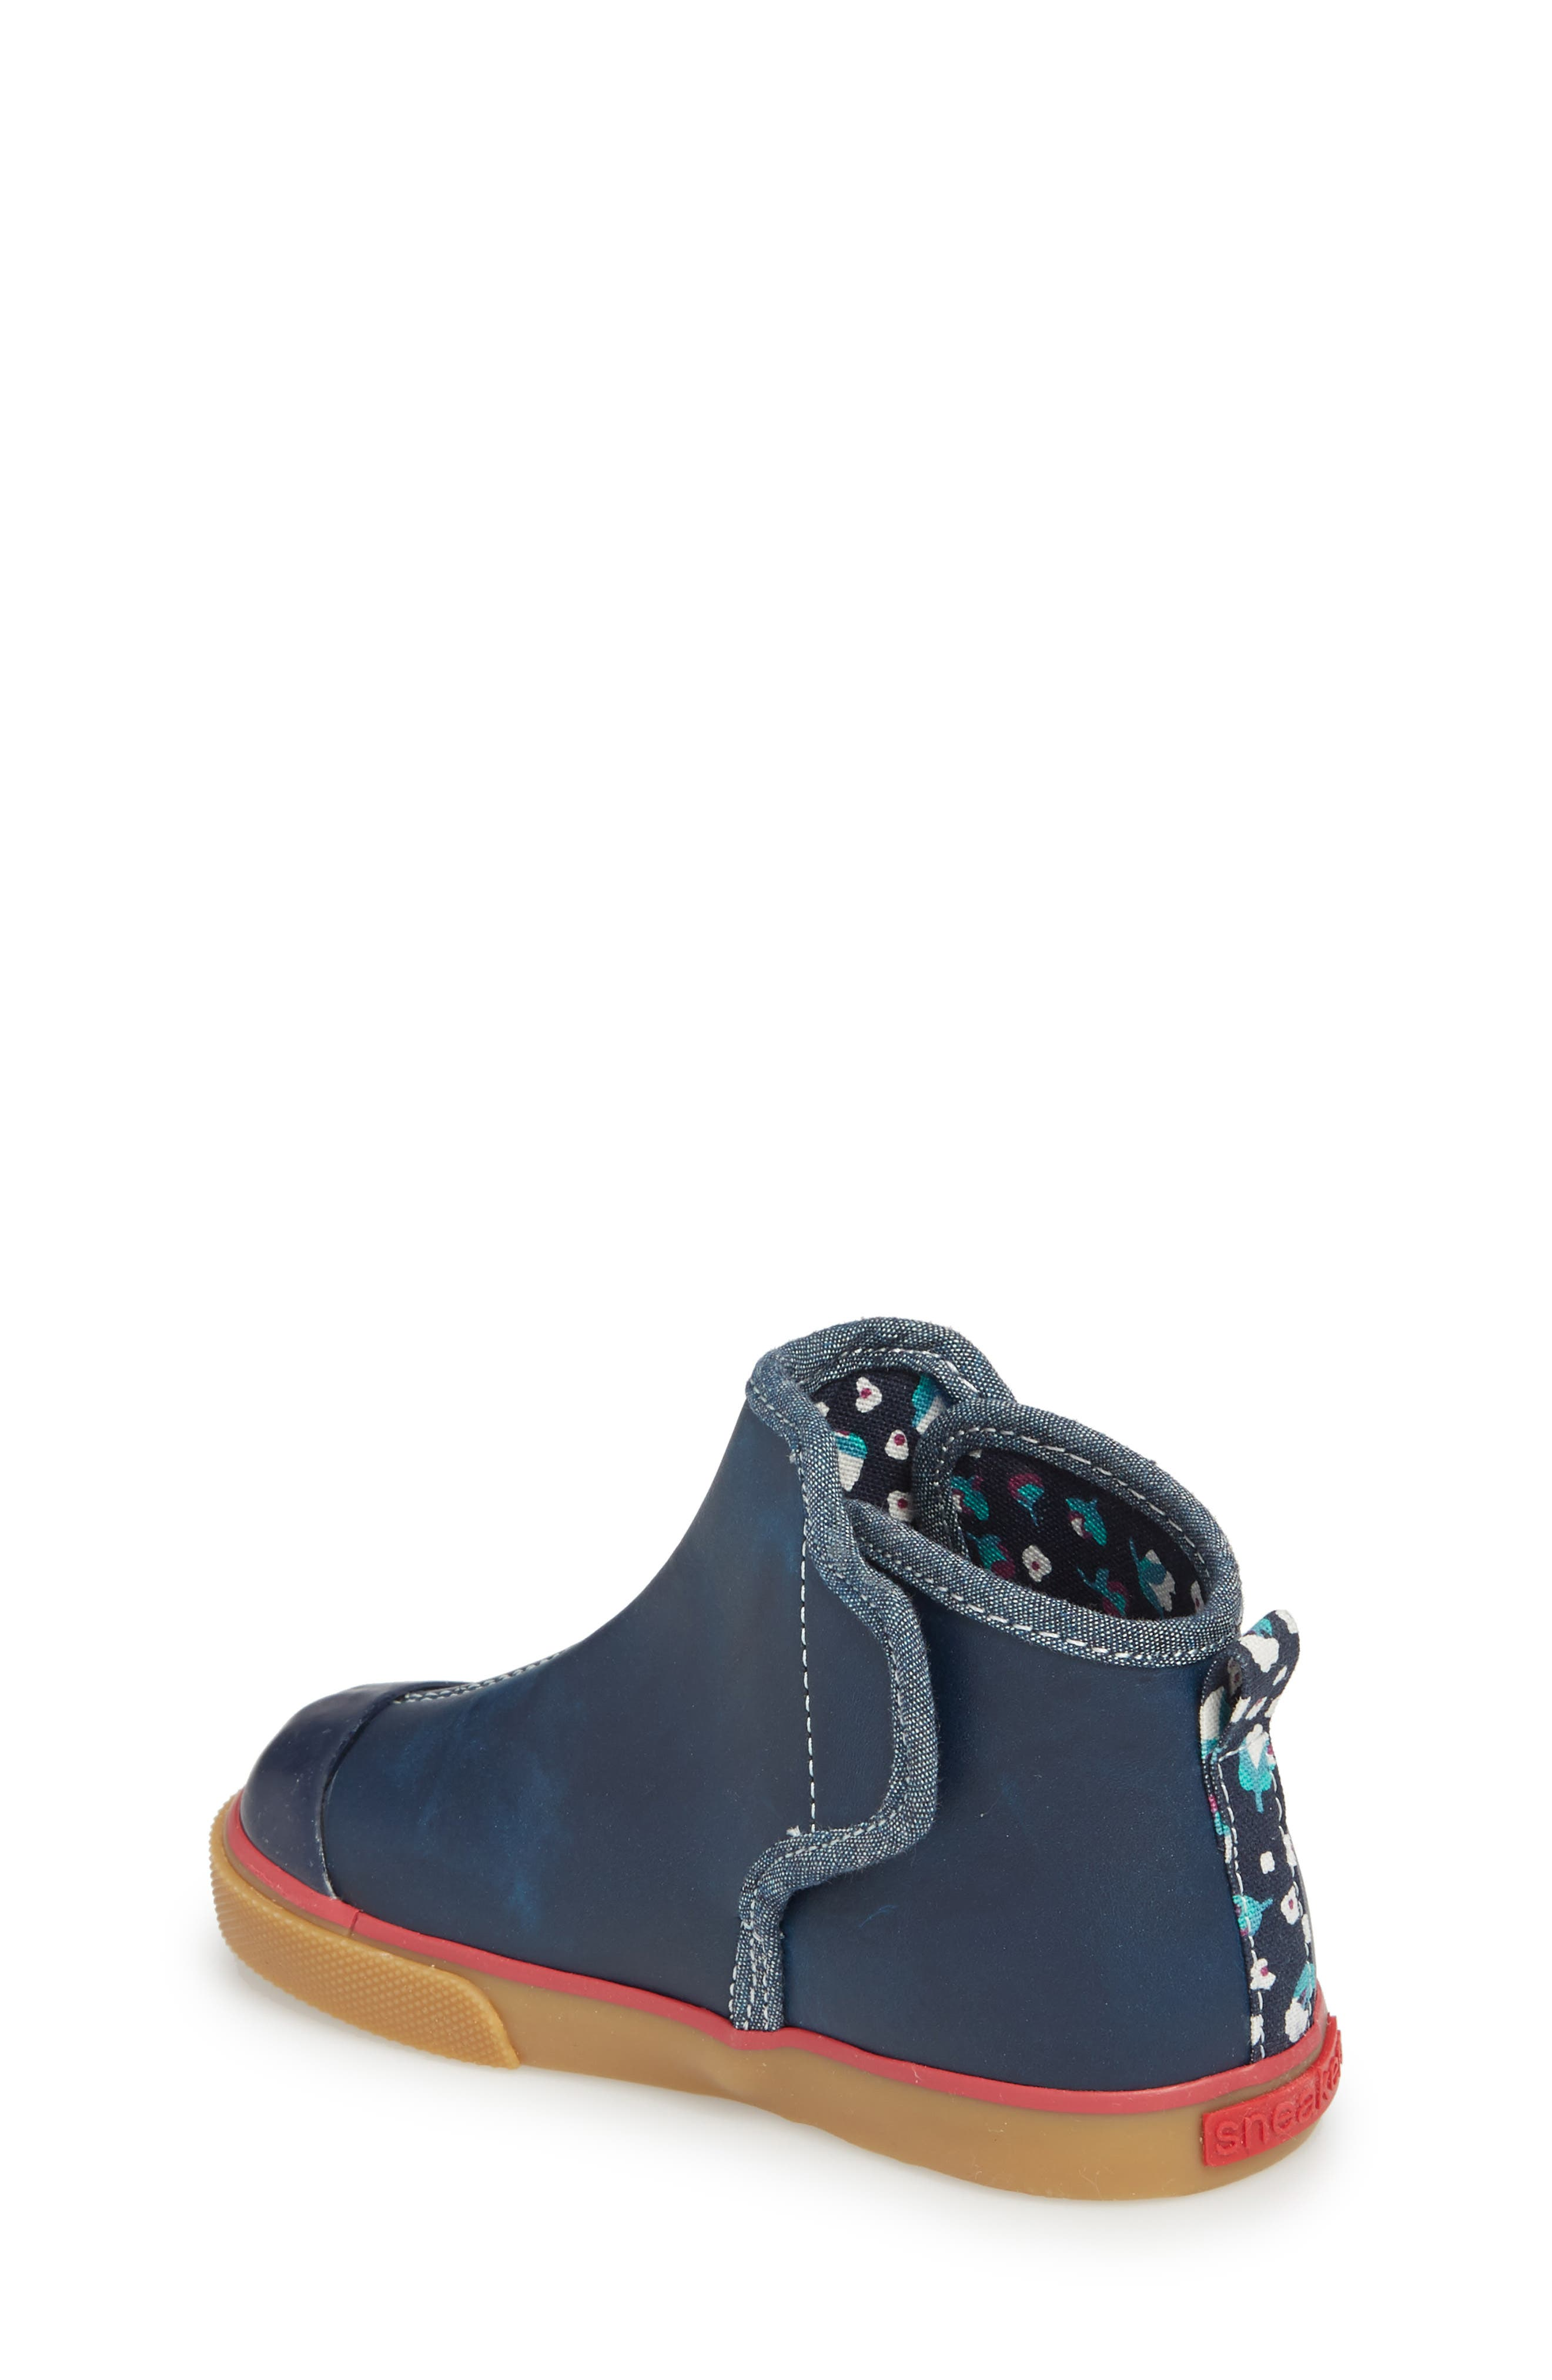 Mia Boot,                             Alternate thumbnail 2, color,                             NAVY LEATHER